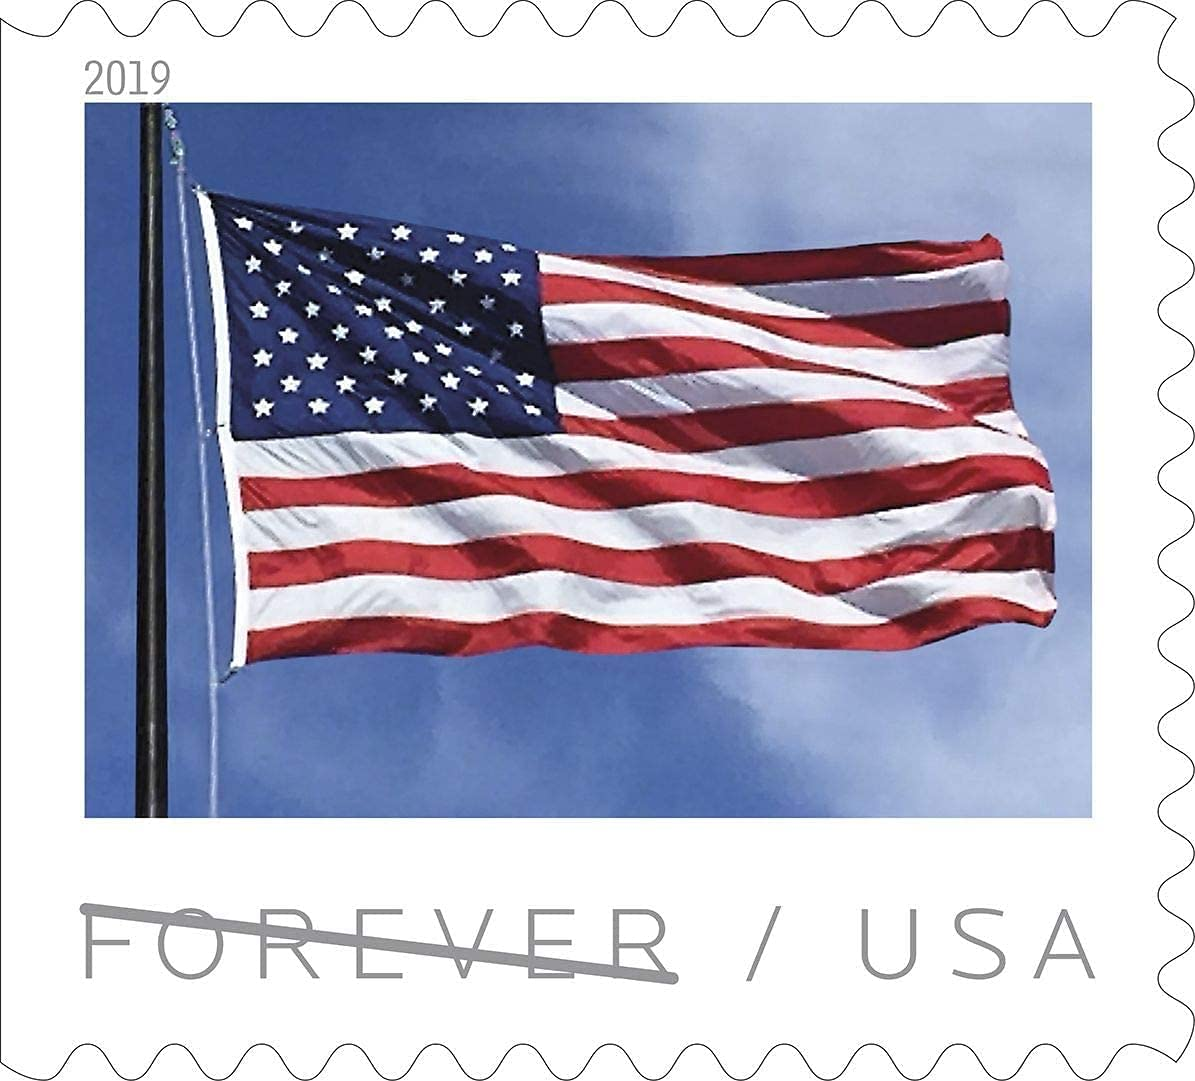 4Sheets of 20 National products Forever 2021 new Ounce Additional 80pcs